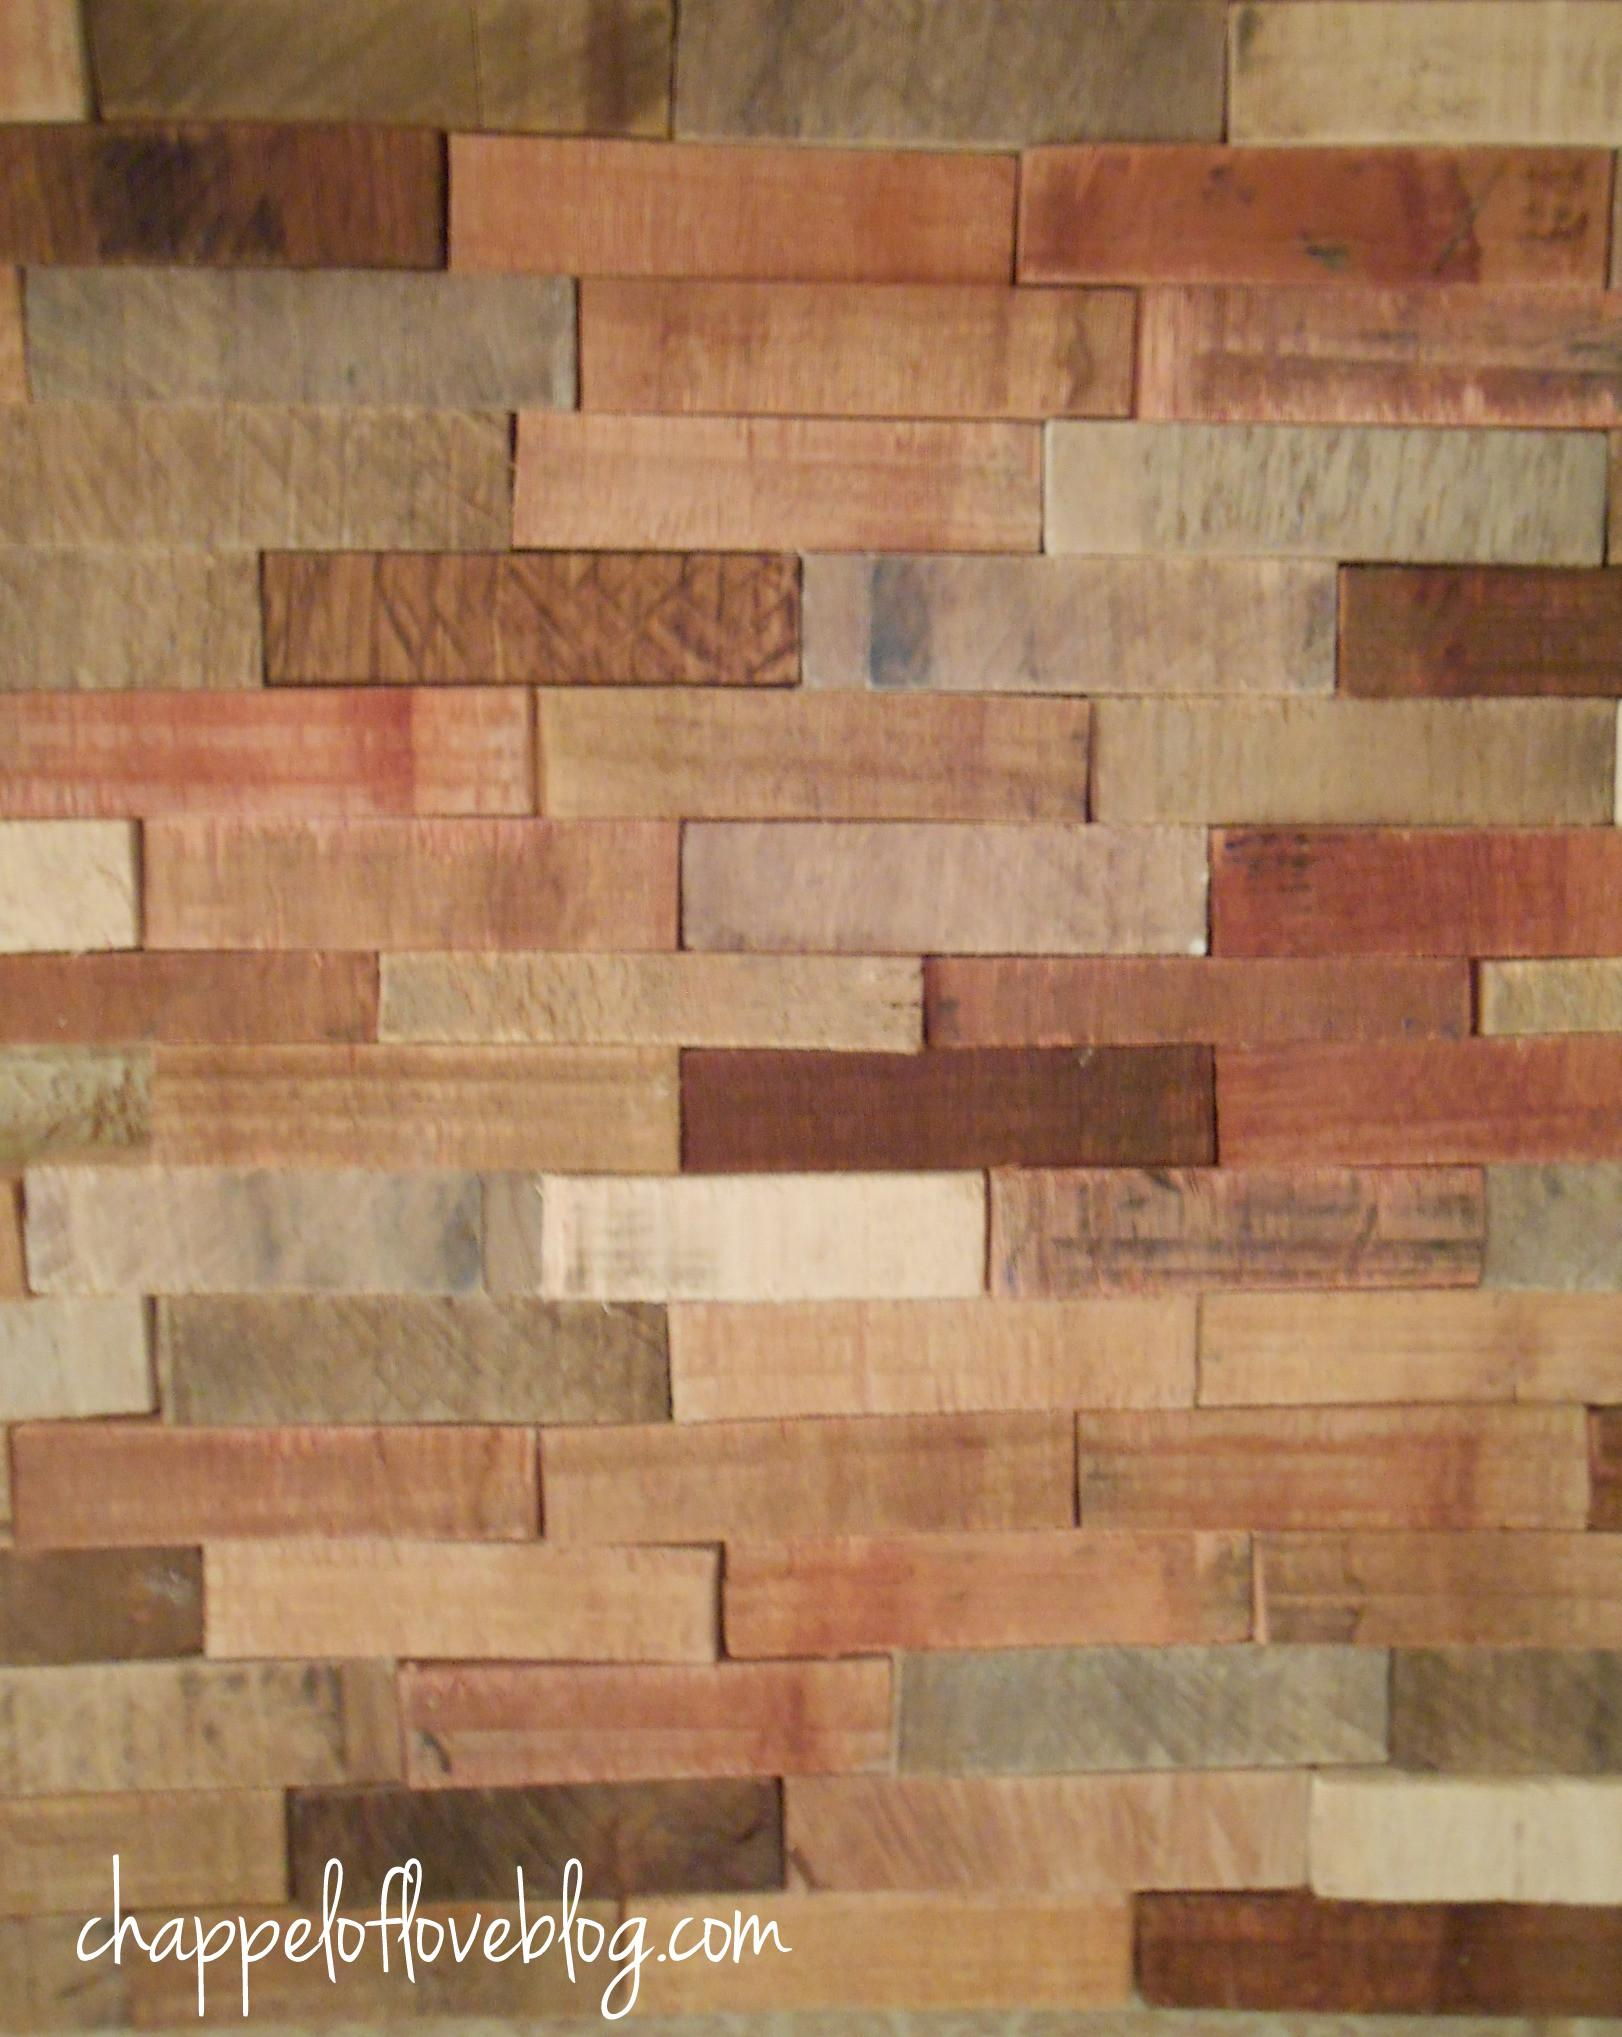 Using Reclaimed Wood Home Decor